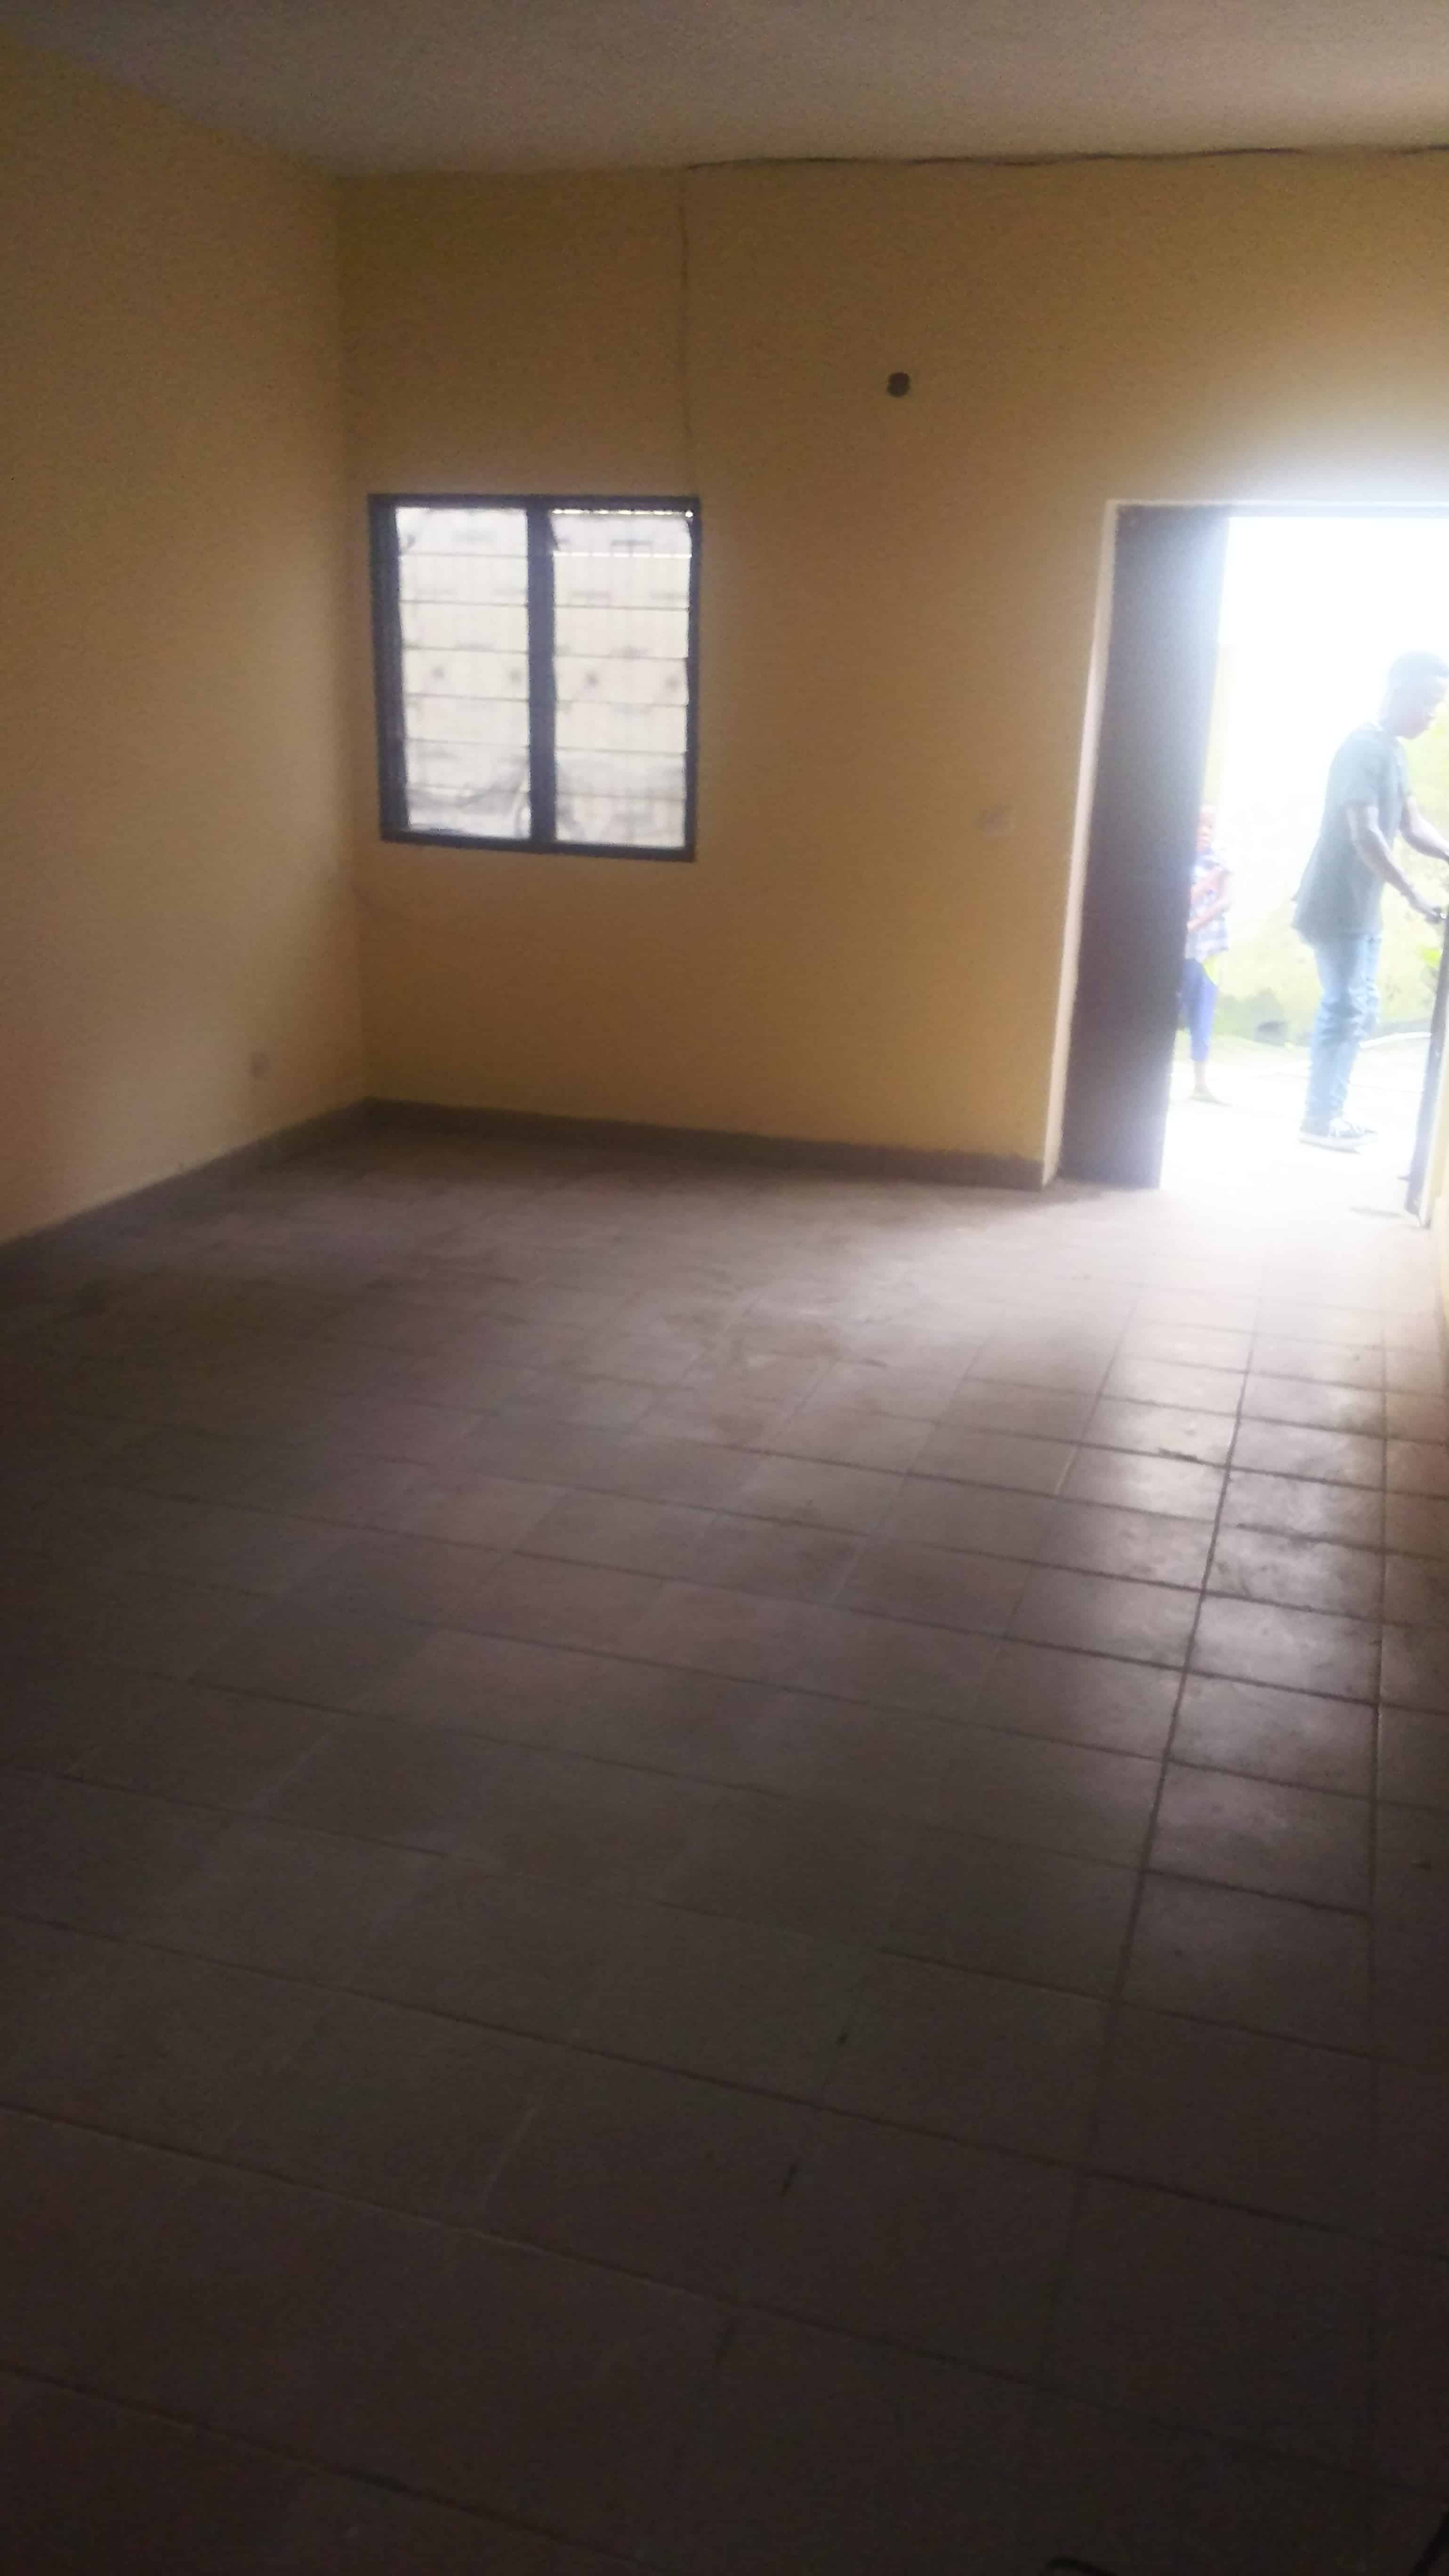 Apartment to rent - Douala, Bepanda, Yoyong en face de l'ecole la popularité - 1 living room(s), 2 bedroom(s), 1 bathroom(s) - 80 000 FCFA / month